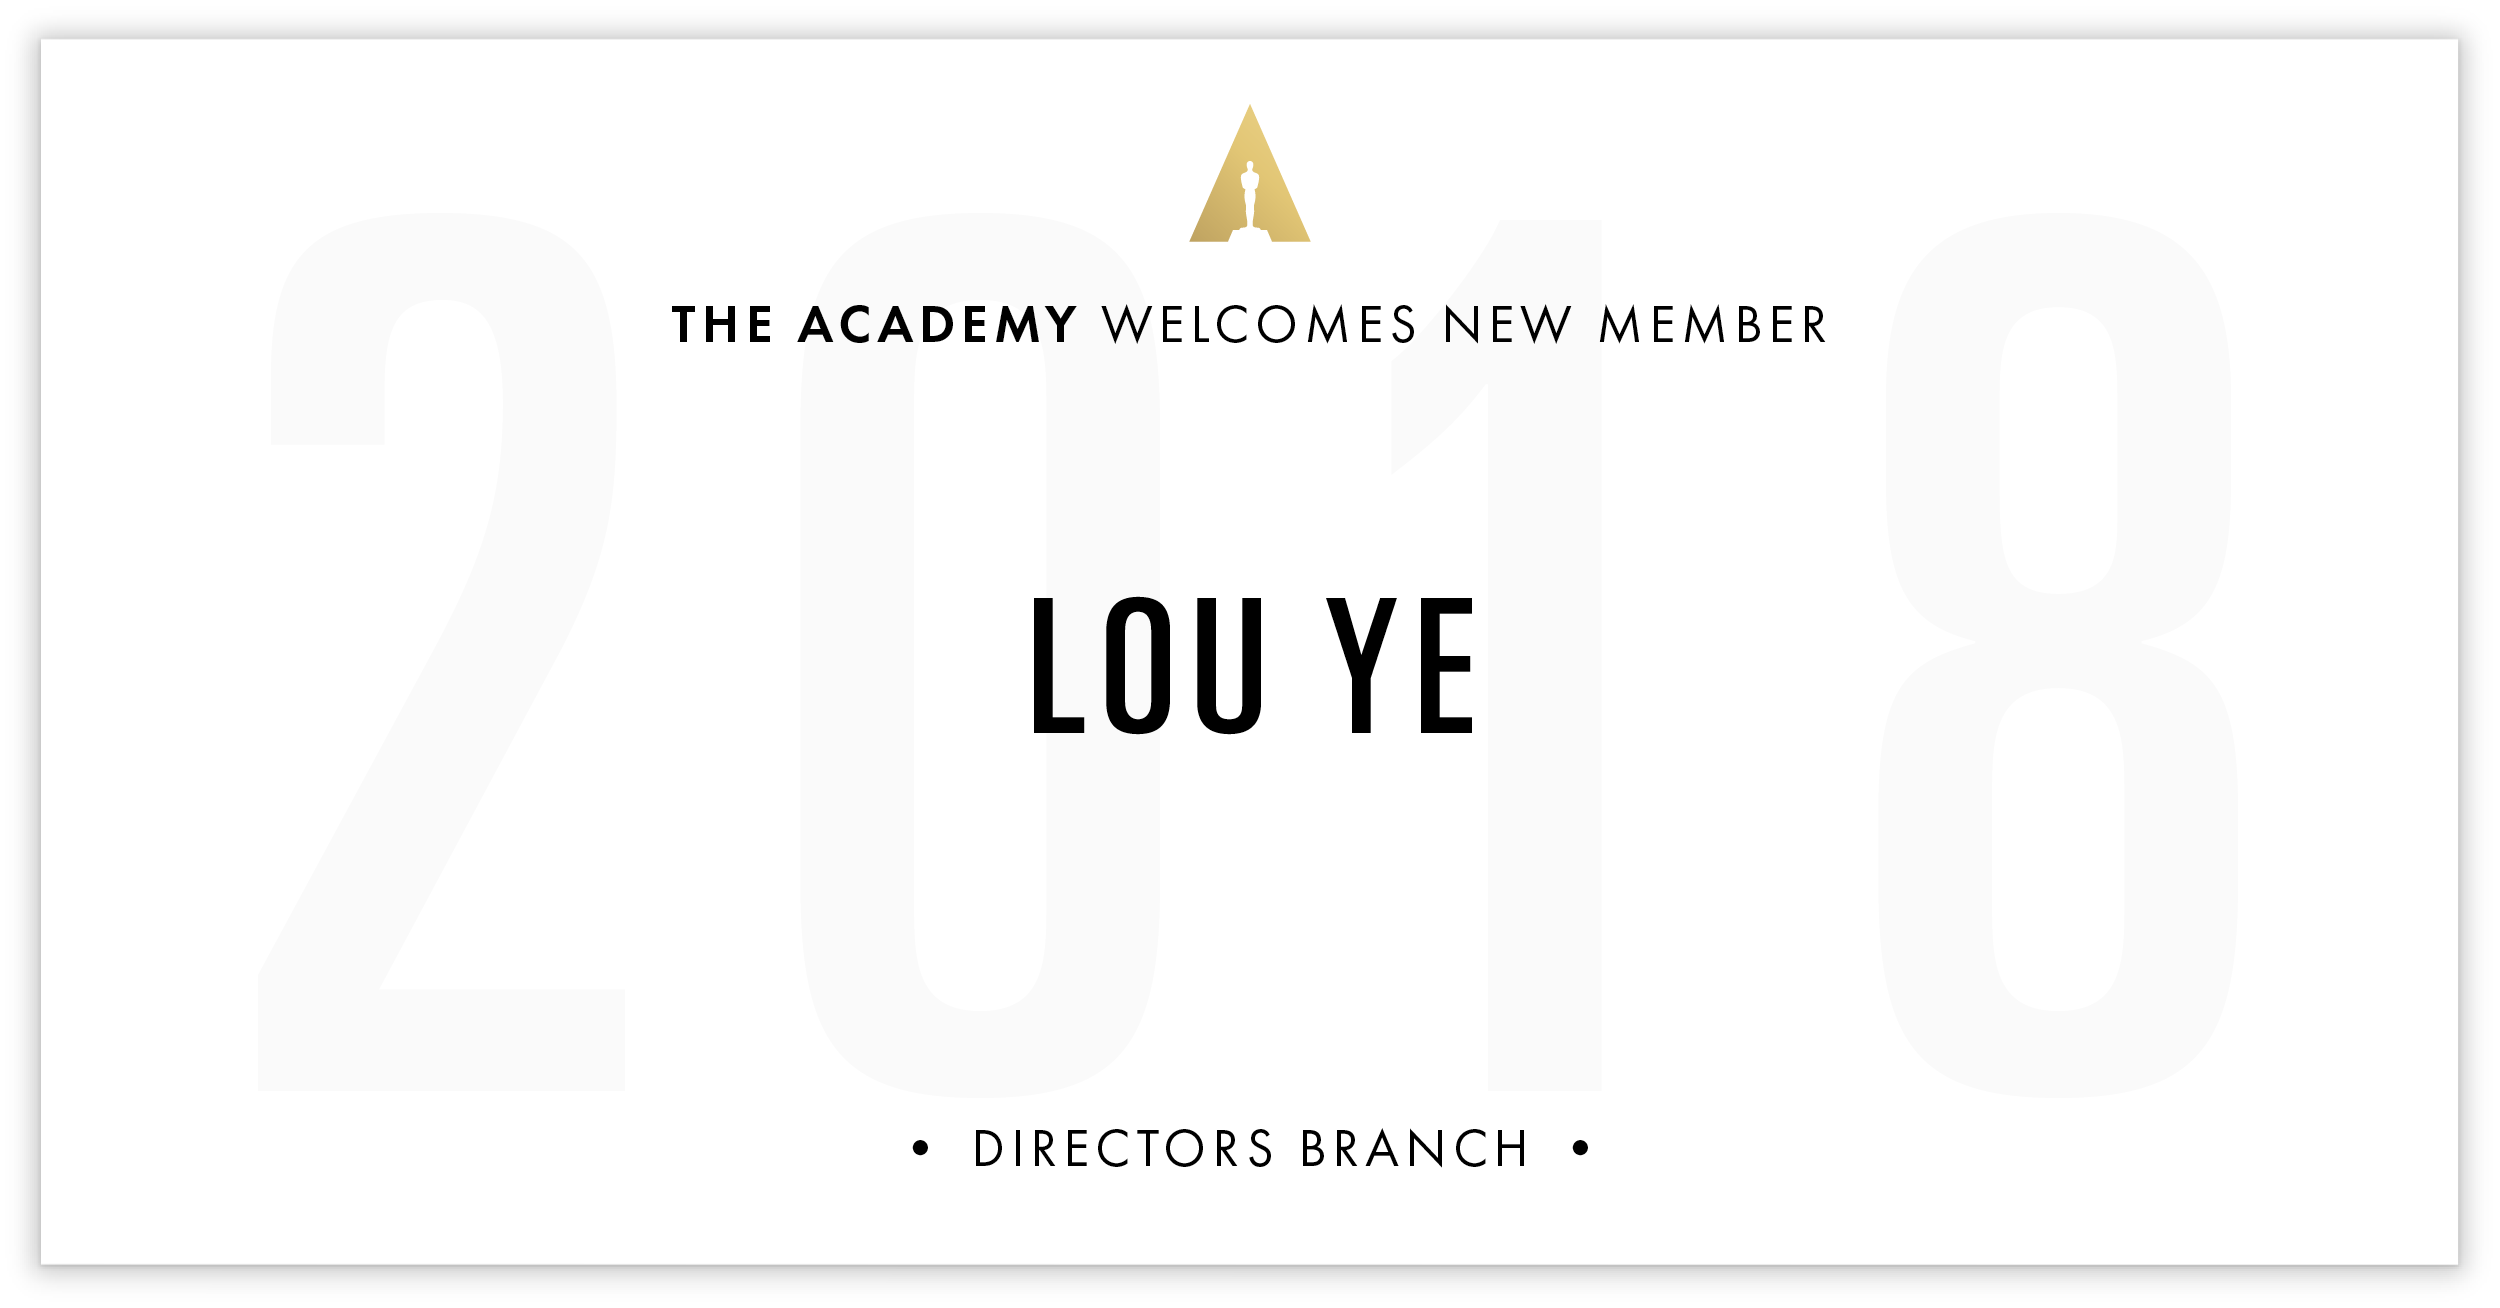 Lou Ye is invited!